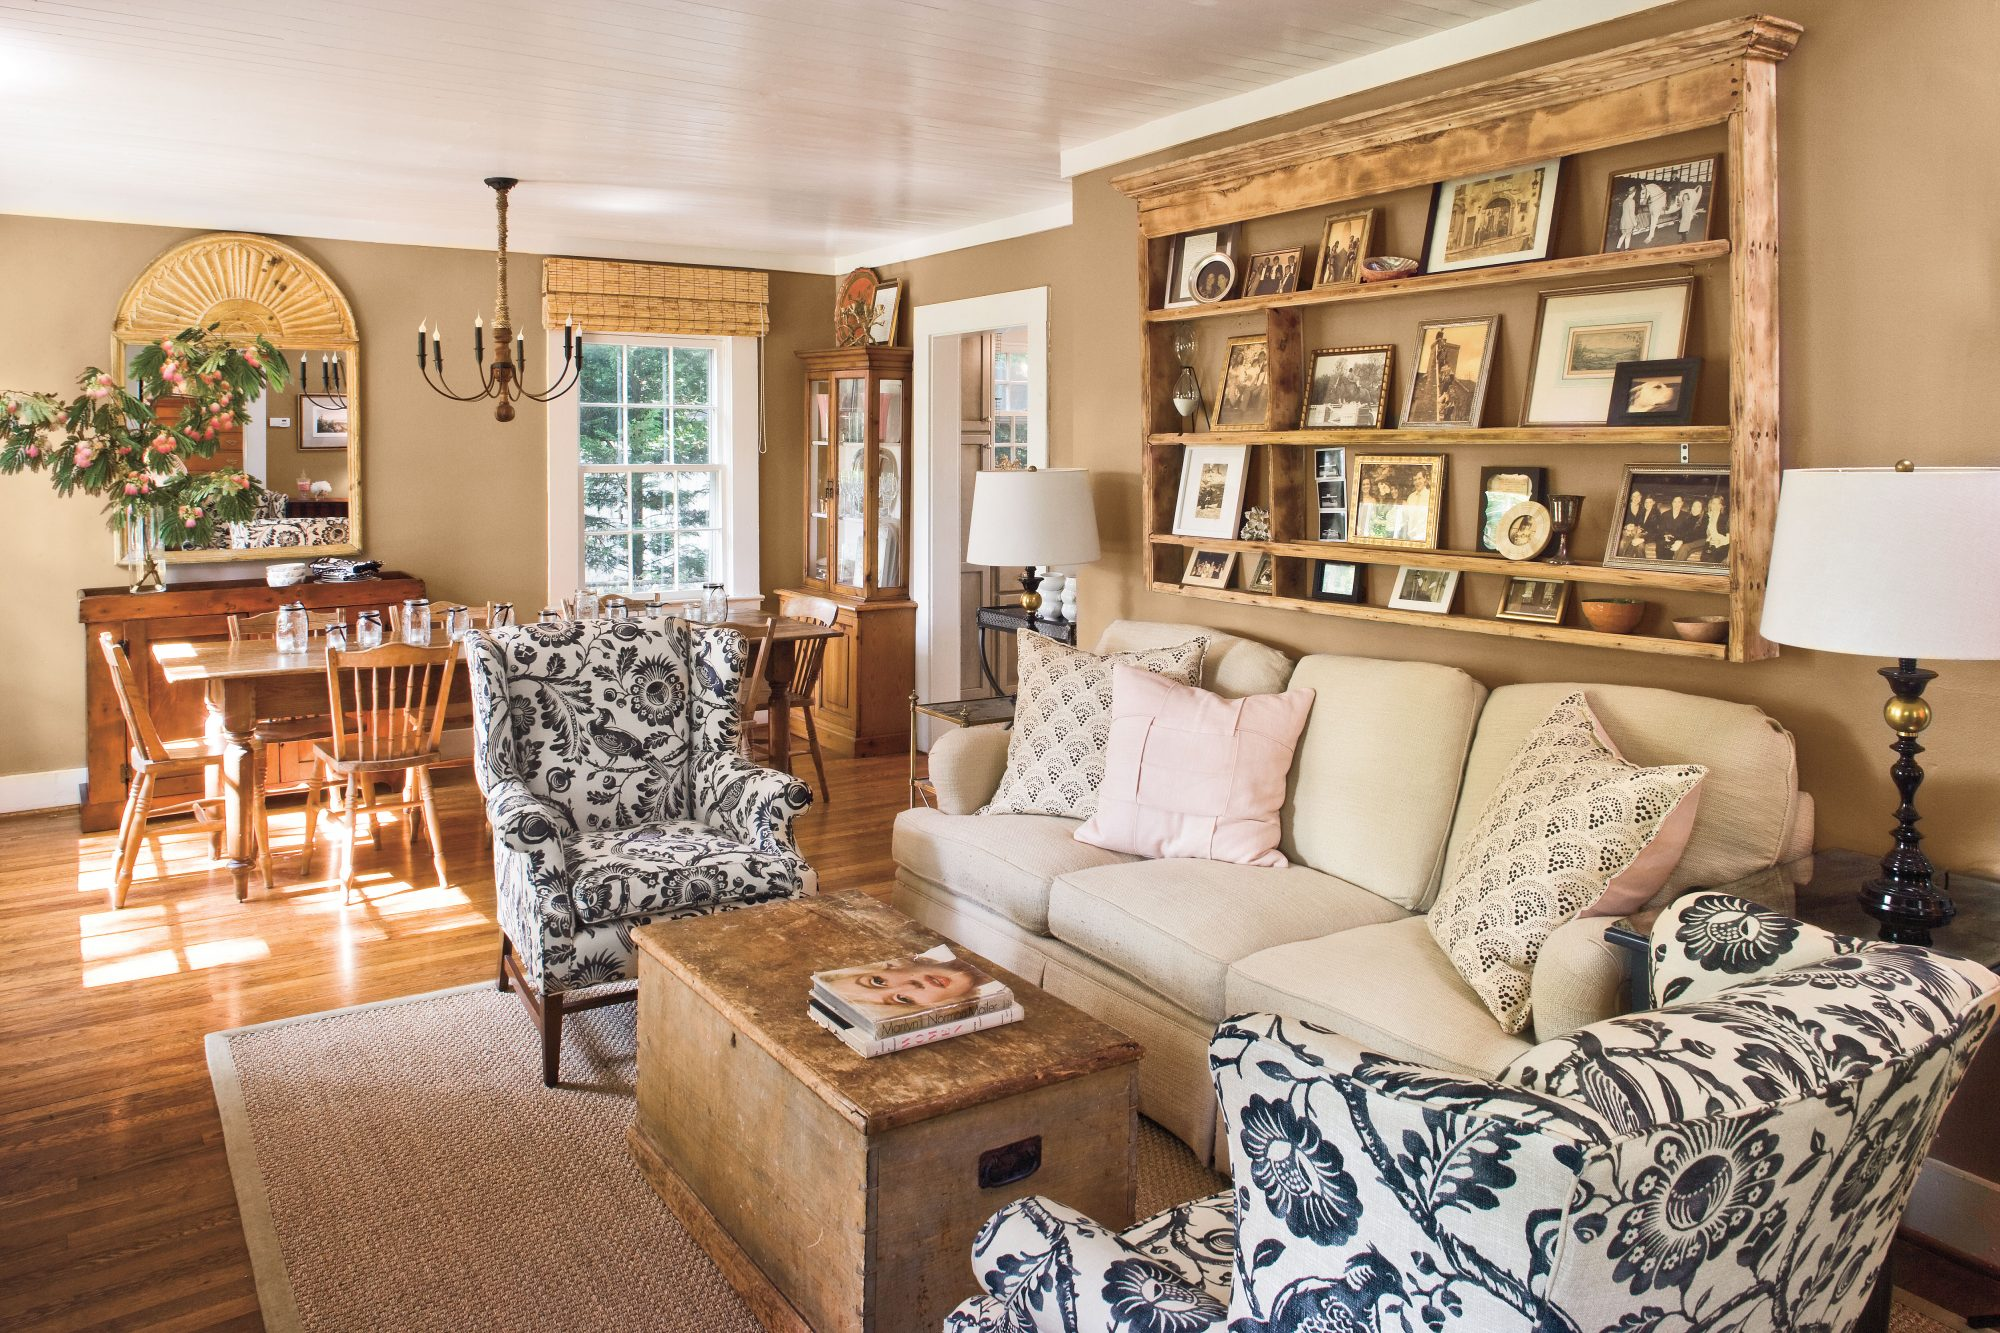 cottage living rooms. Cottage living room Style Ideas and Inspiration  Southern Living